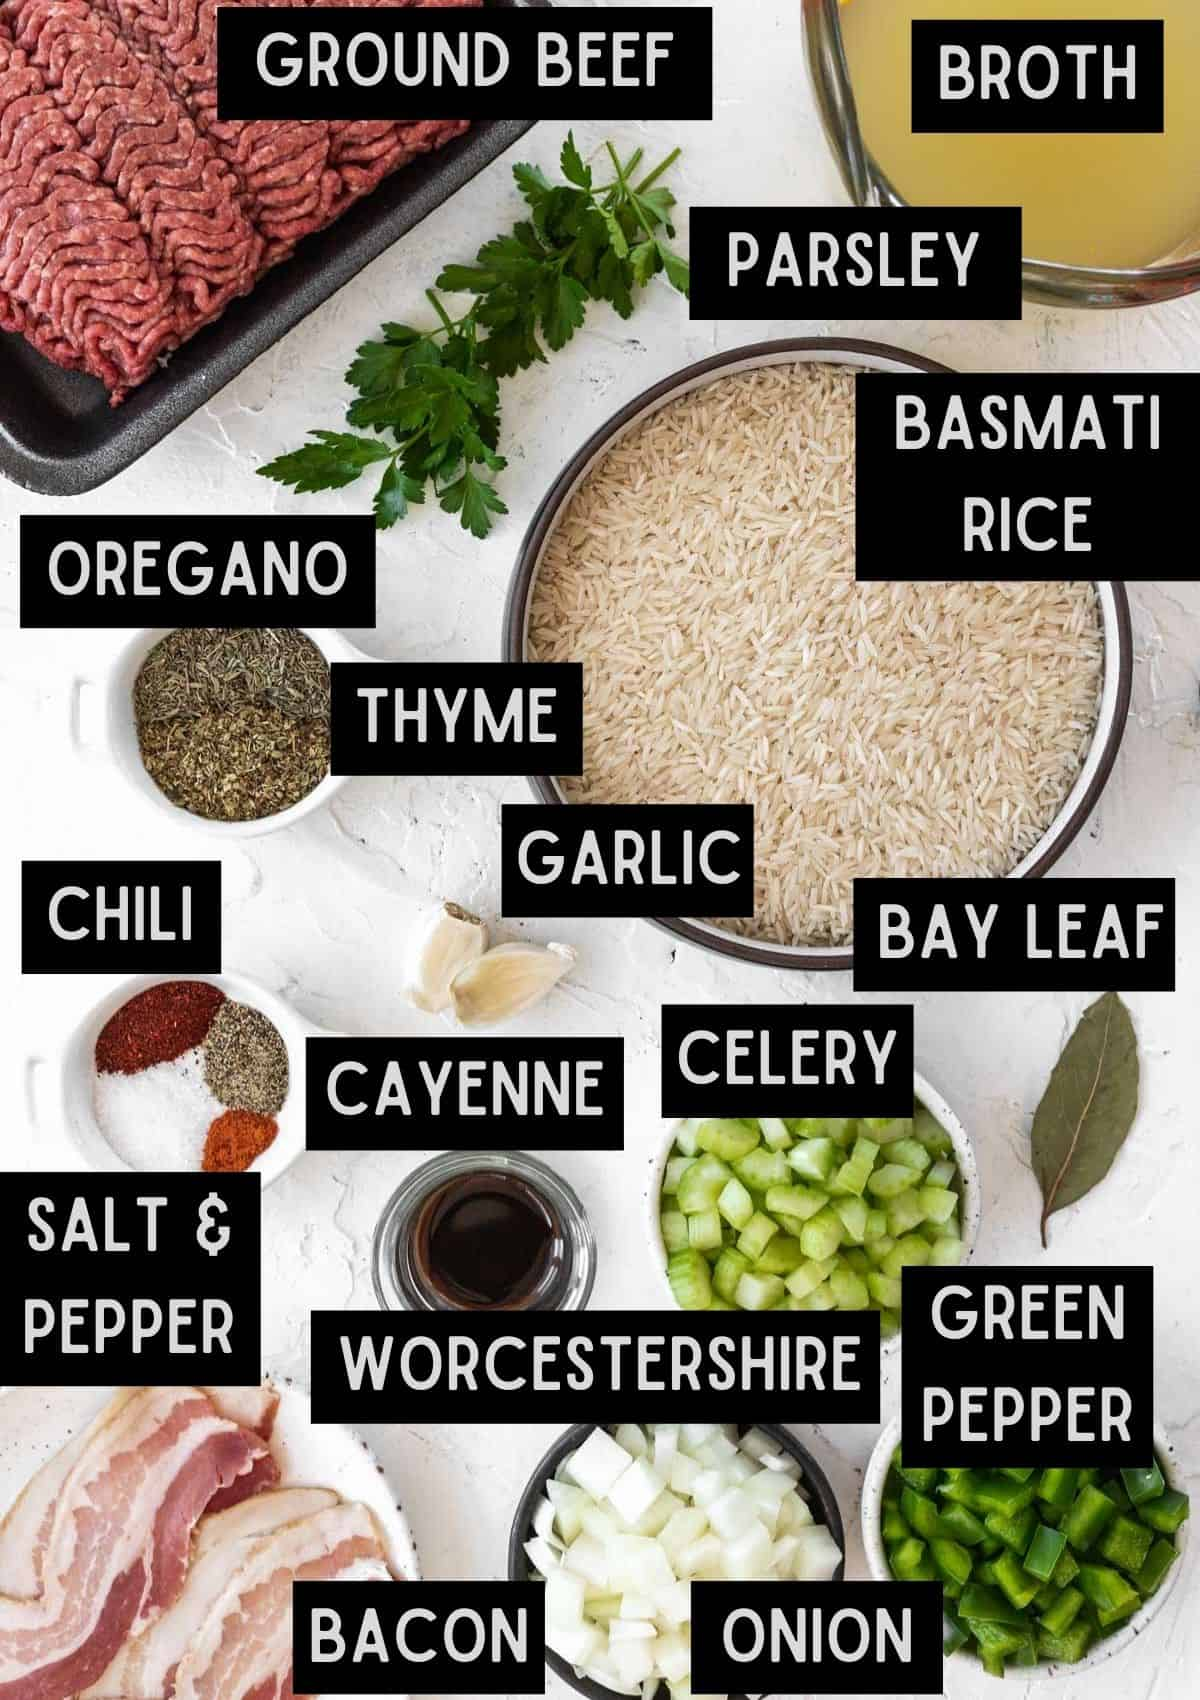 Labelled ingredients for homemade dirty rice (see recipe for details).